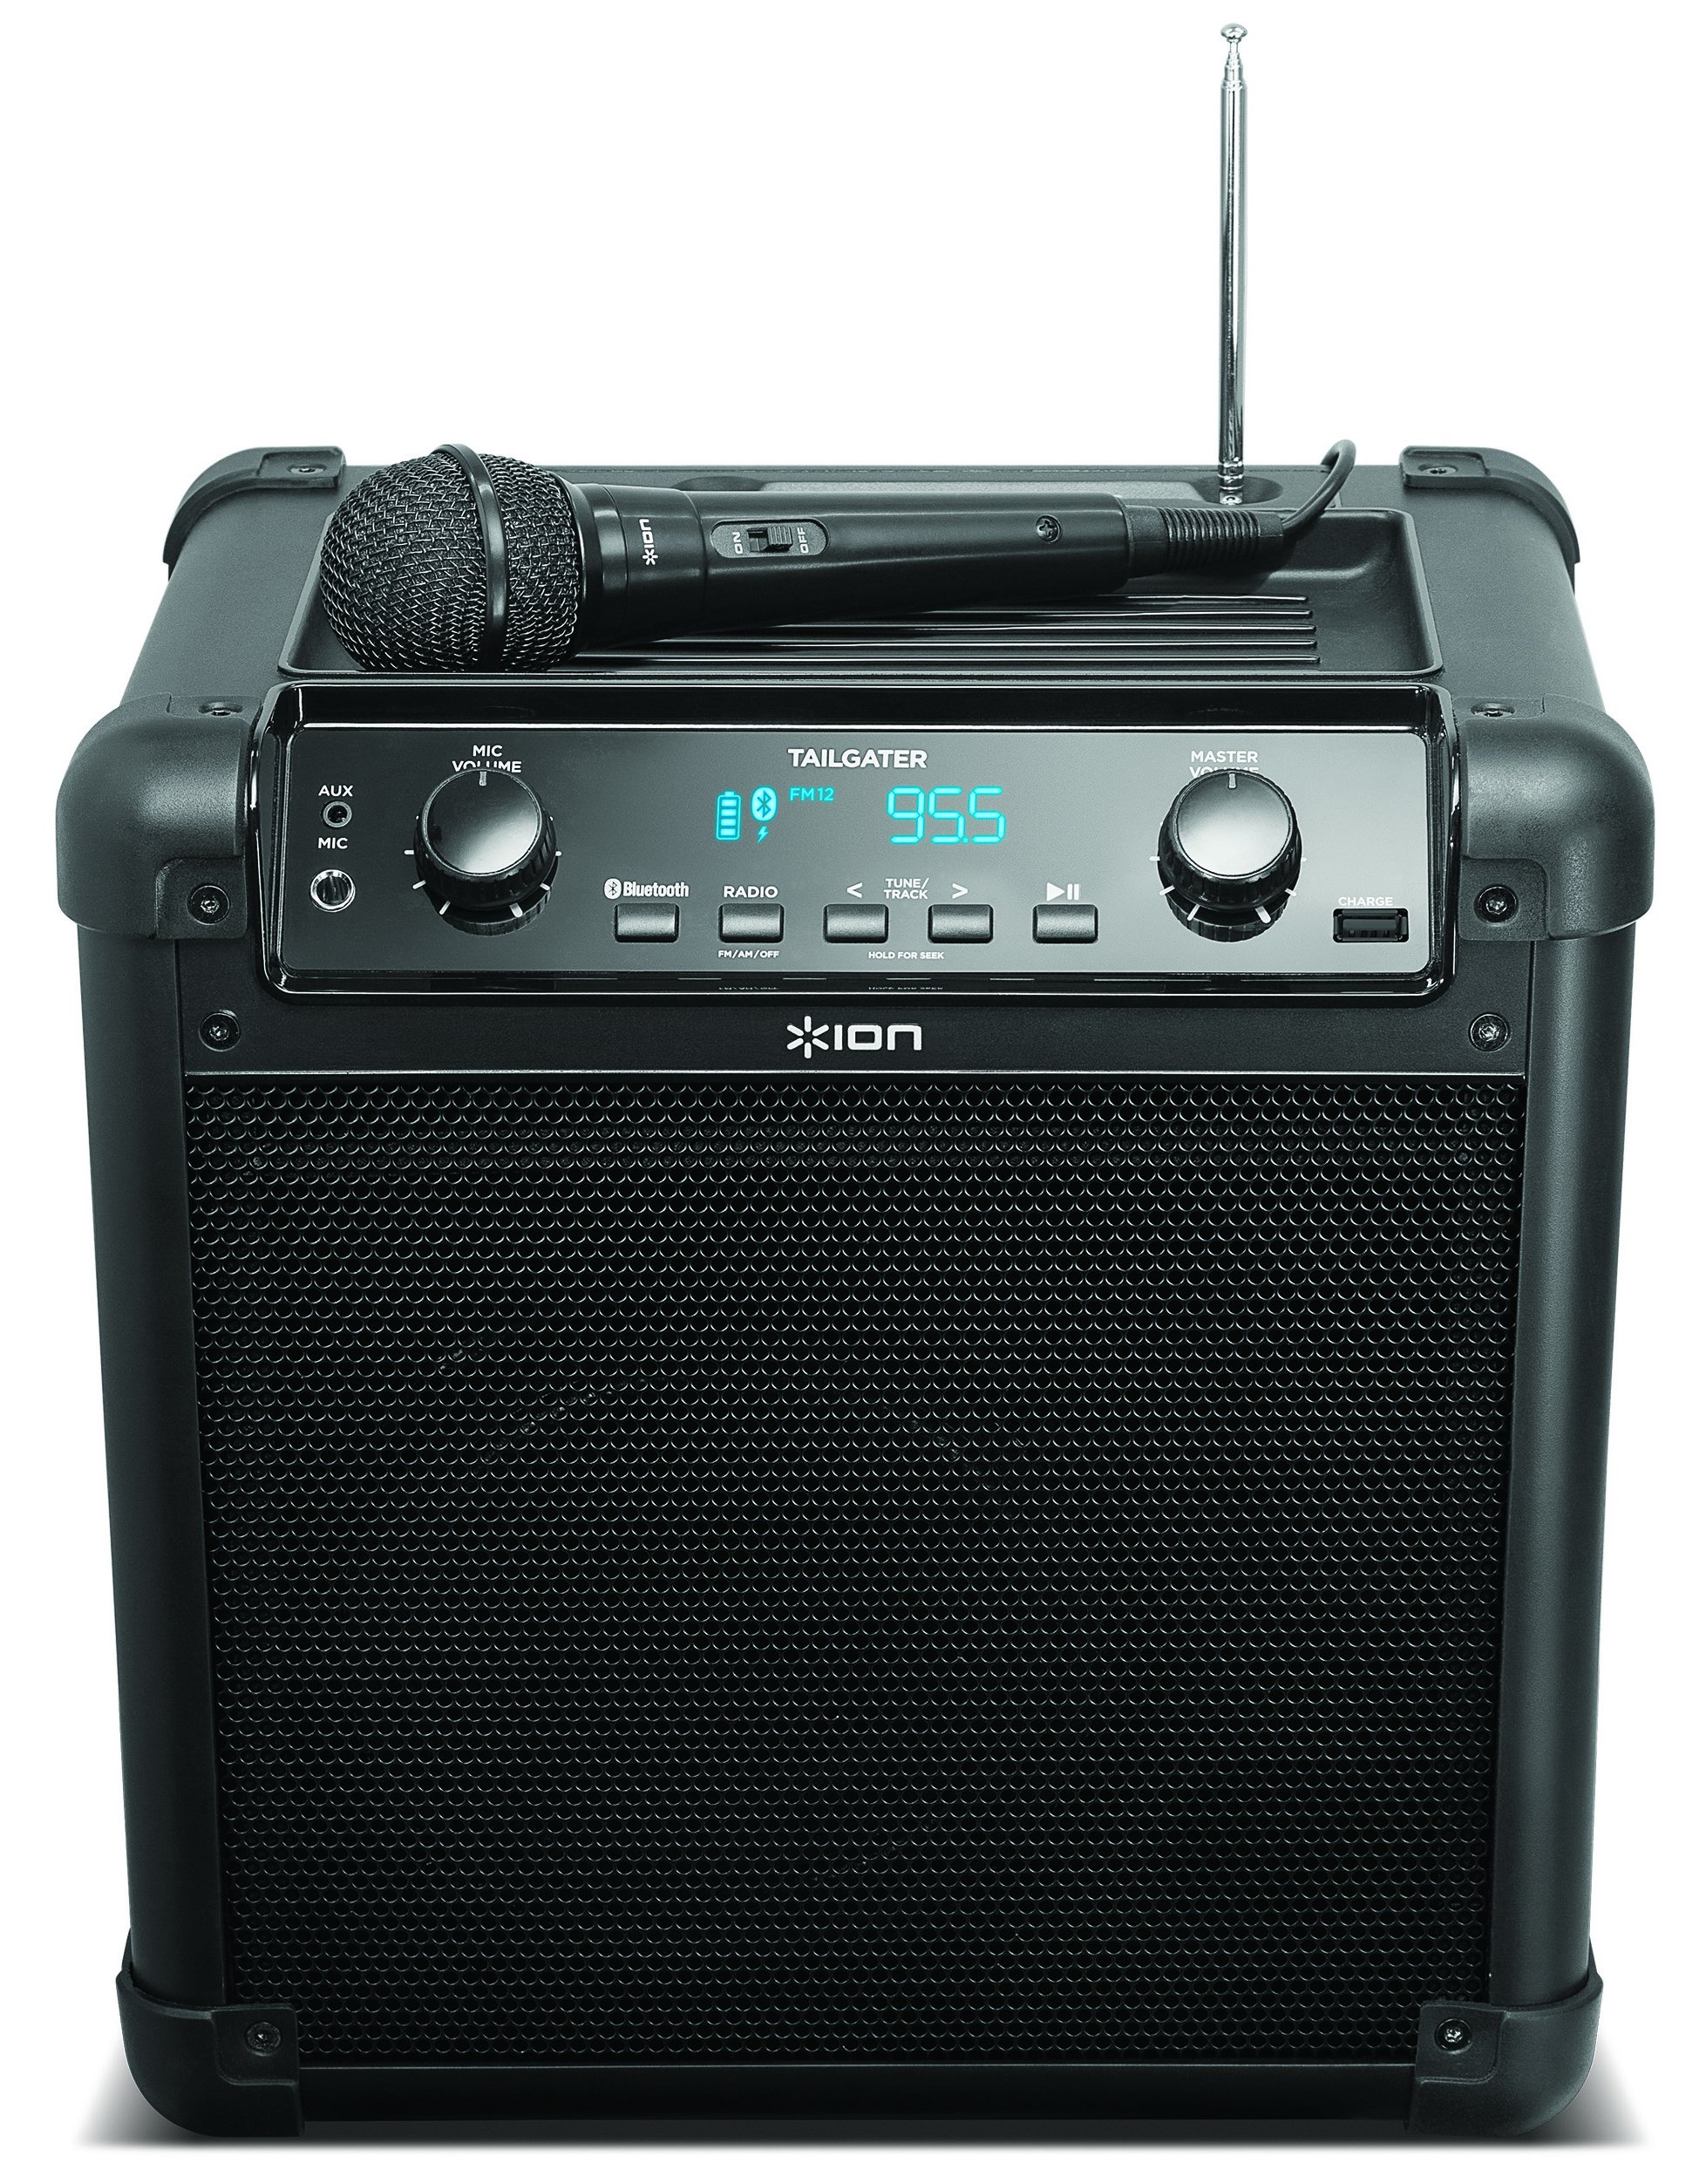 ION Audio Tailgater (iPA77) | Portable Bluetooth PA Speaker with Mic, AM/FM Radio, and USB Charge Port by ION Audio (Image #5)